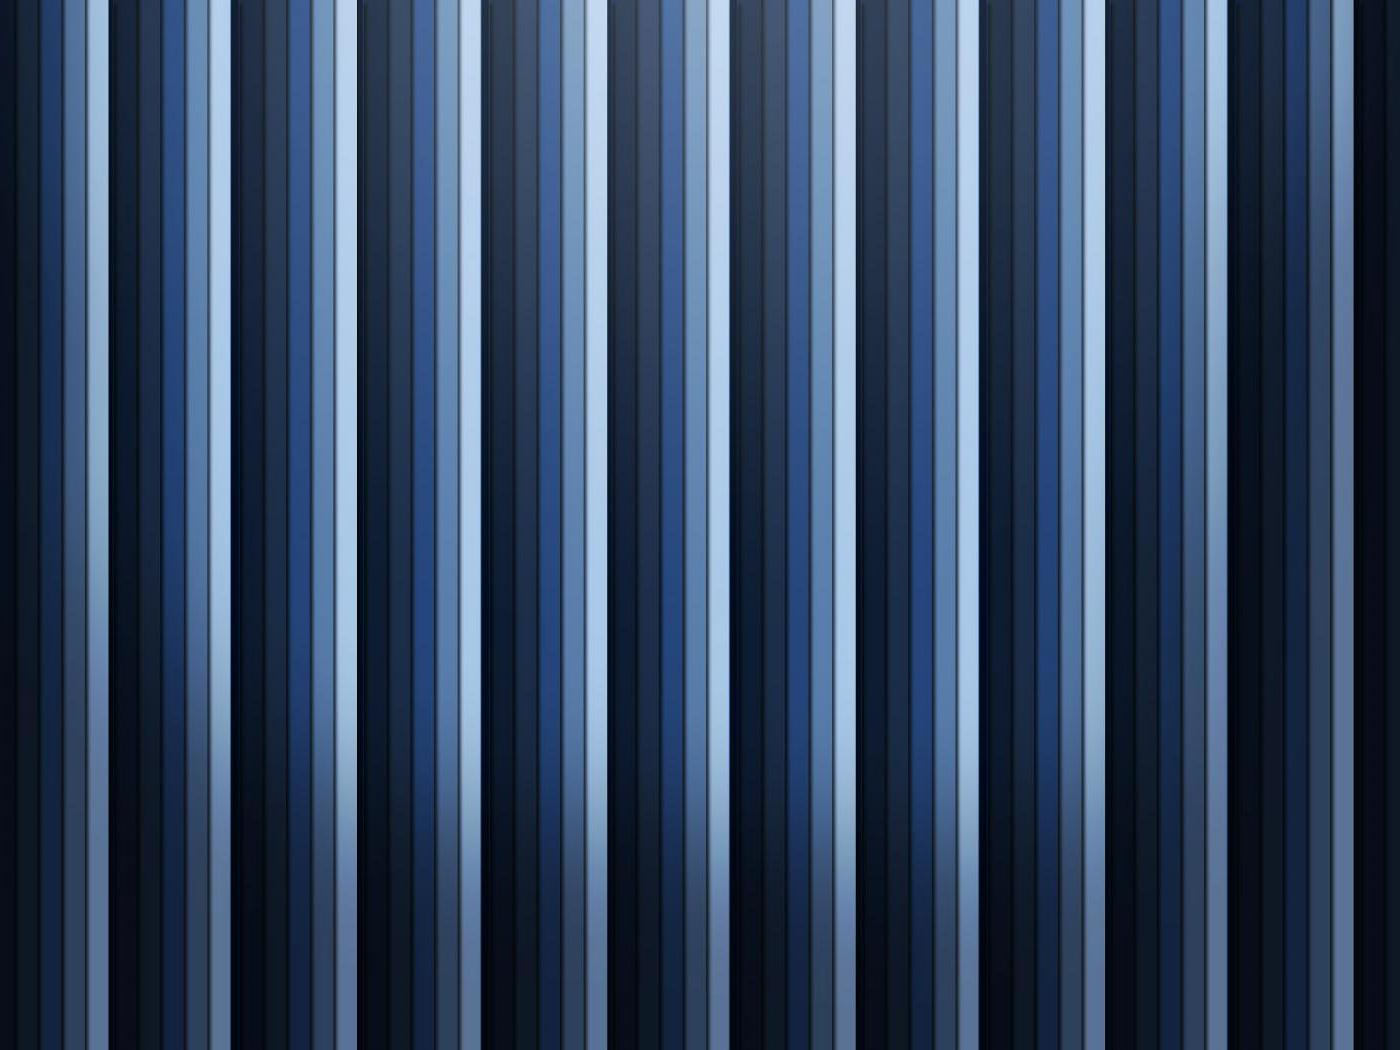 Blue Stripe Wallpaper Navy Blue Stripe Wallpaper Blue Wallpapers 1400x1050